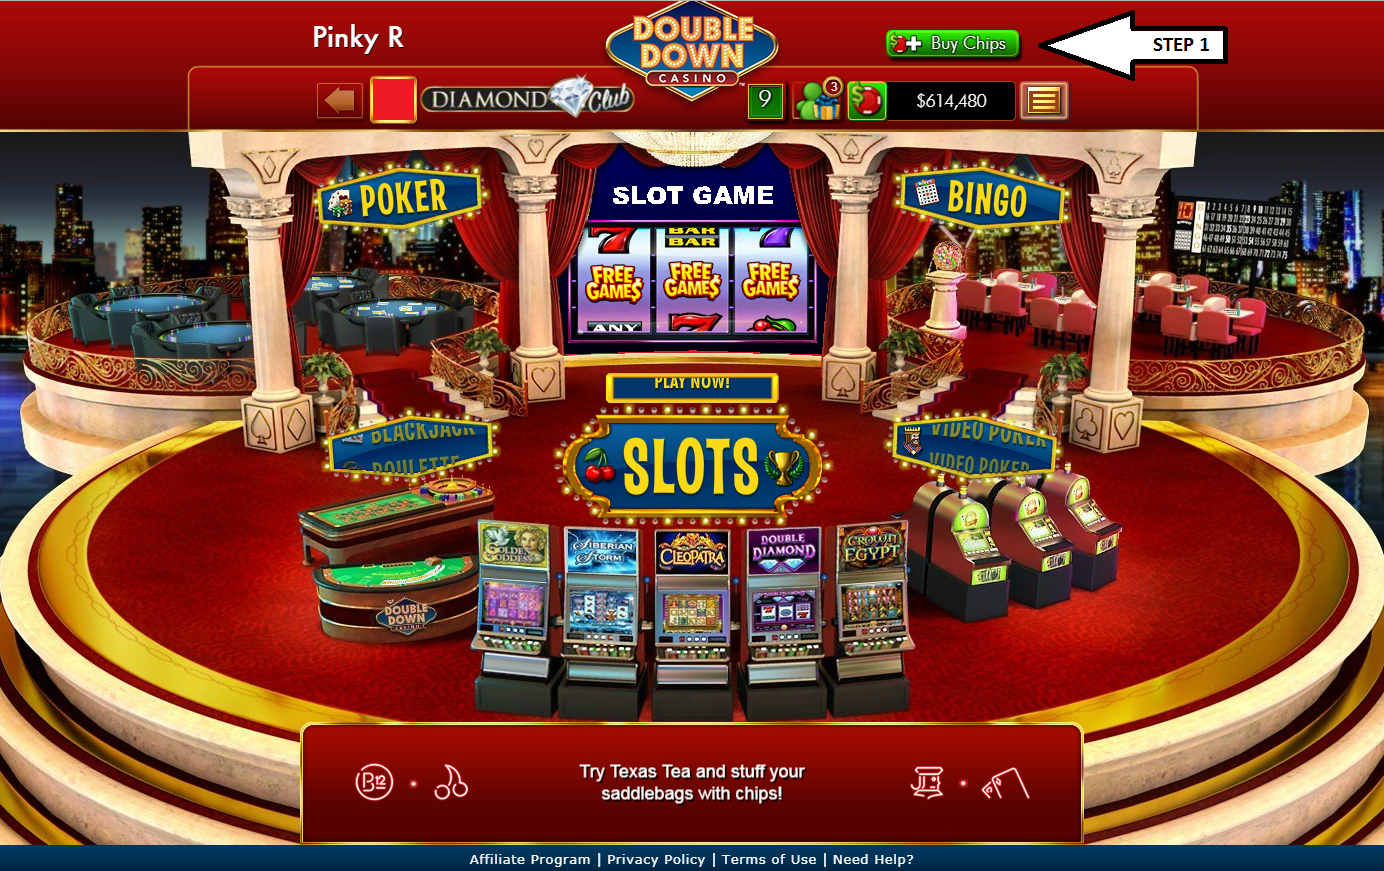 Double down casino free slot games